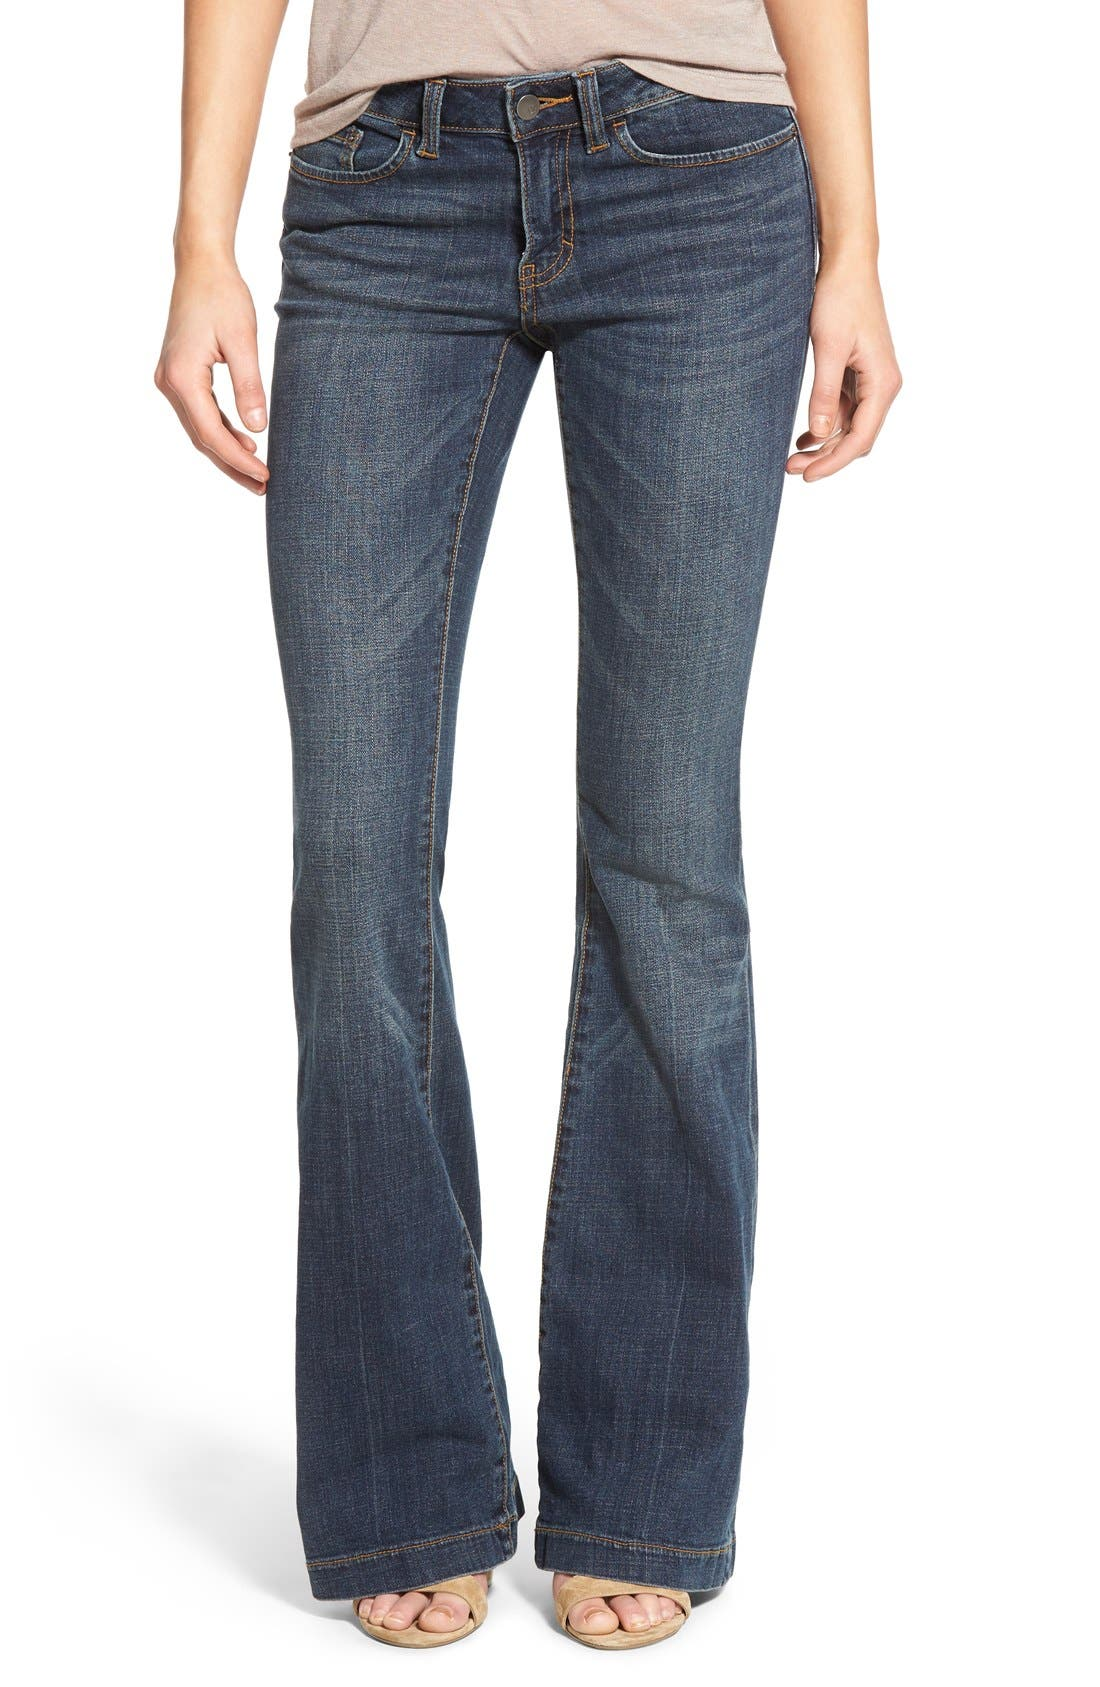 Alternate Image 1 Selected - BP. Mid Rise Flare Jeans (Dark Bloom)